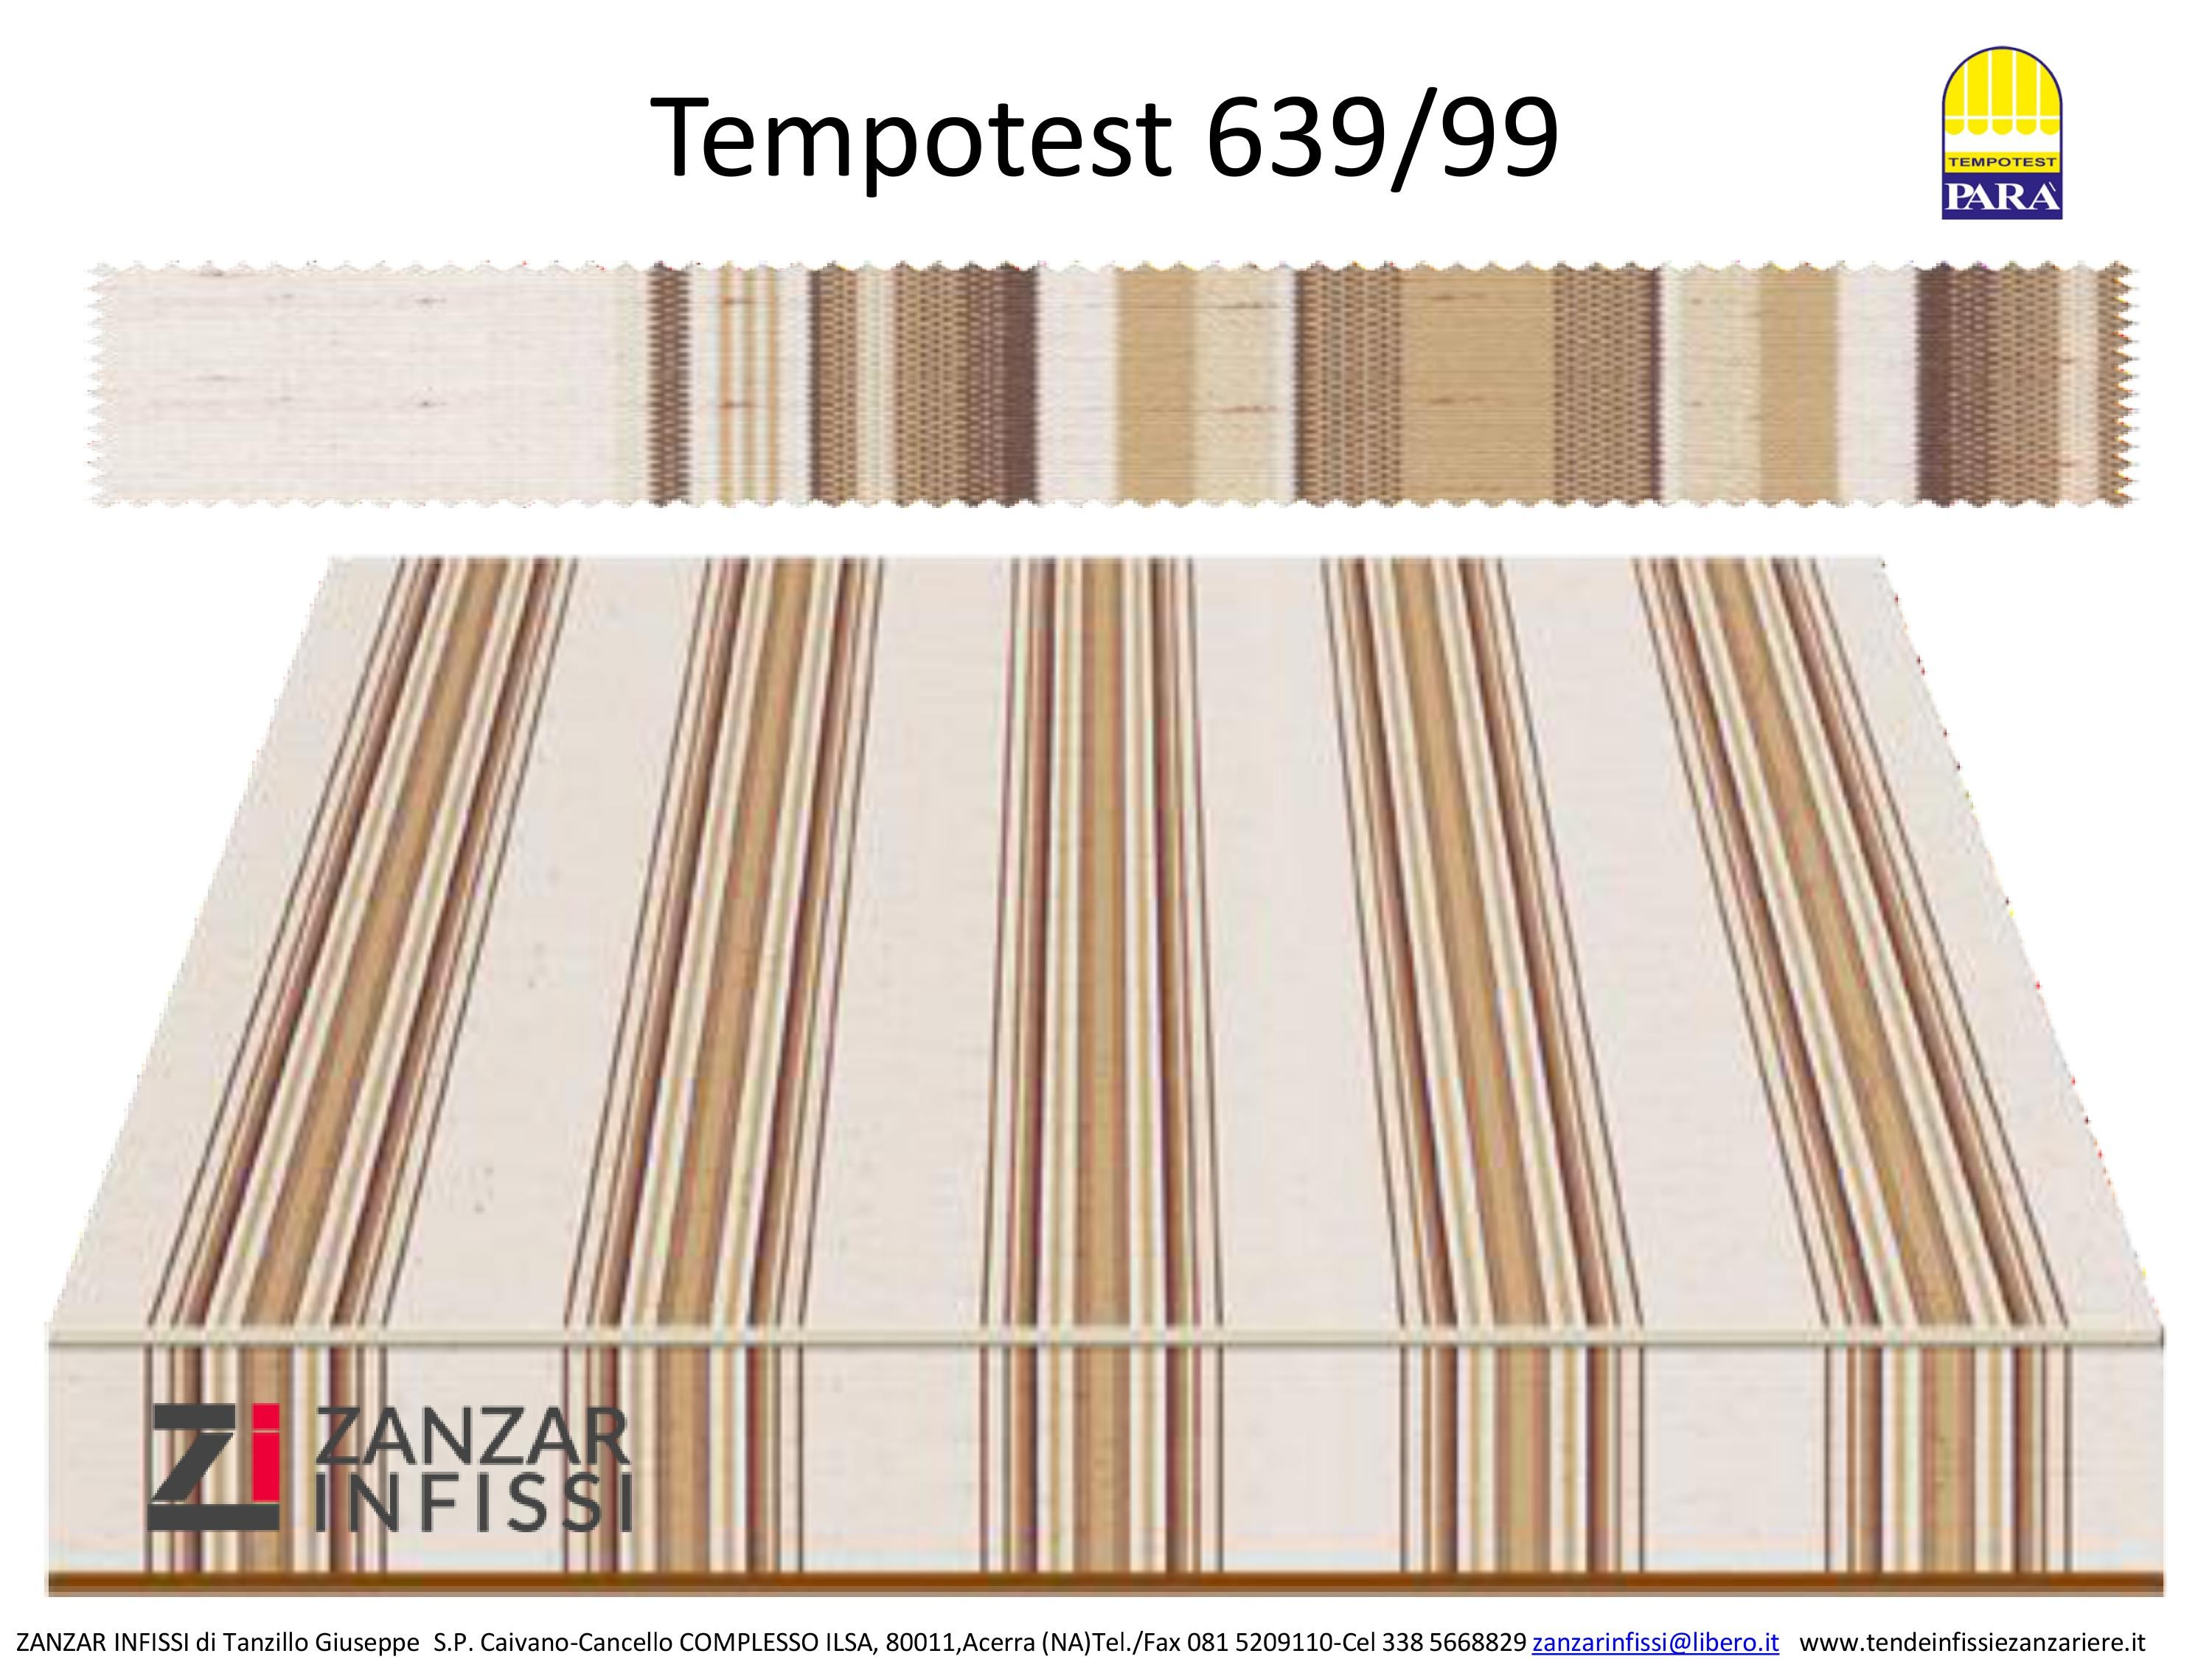 Tempotest 639/99